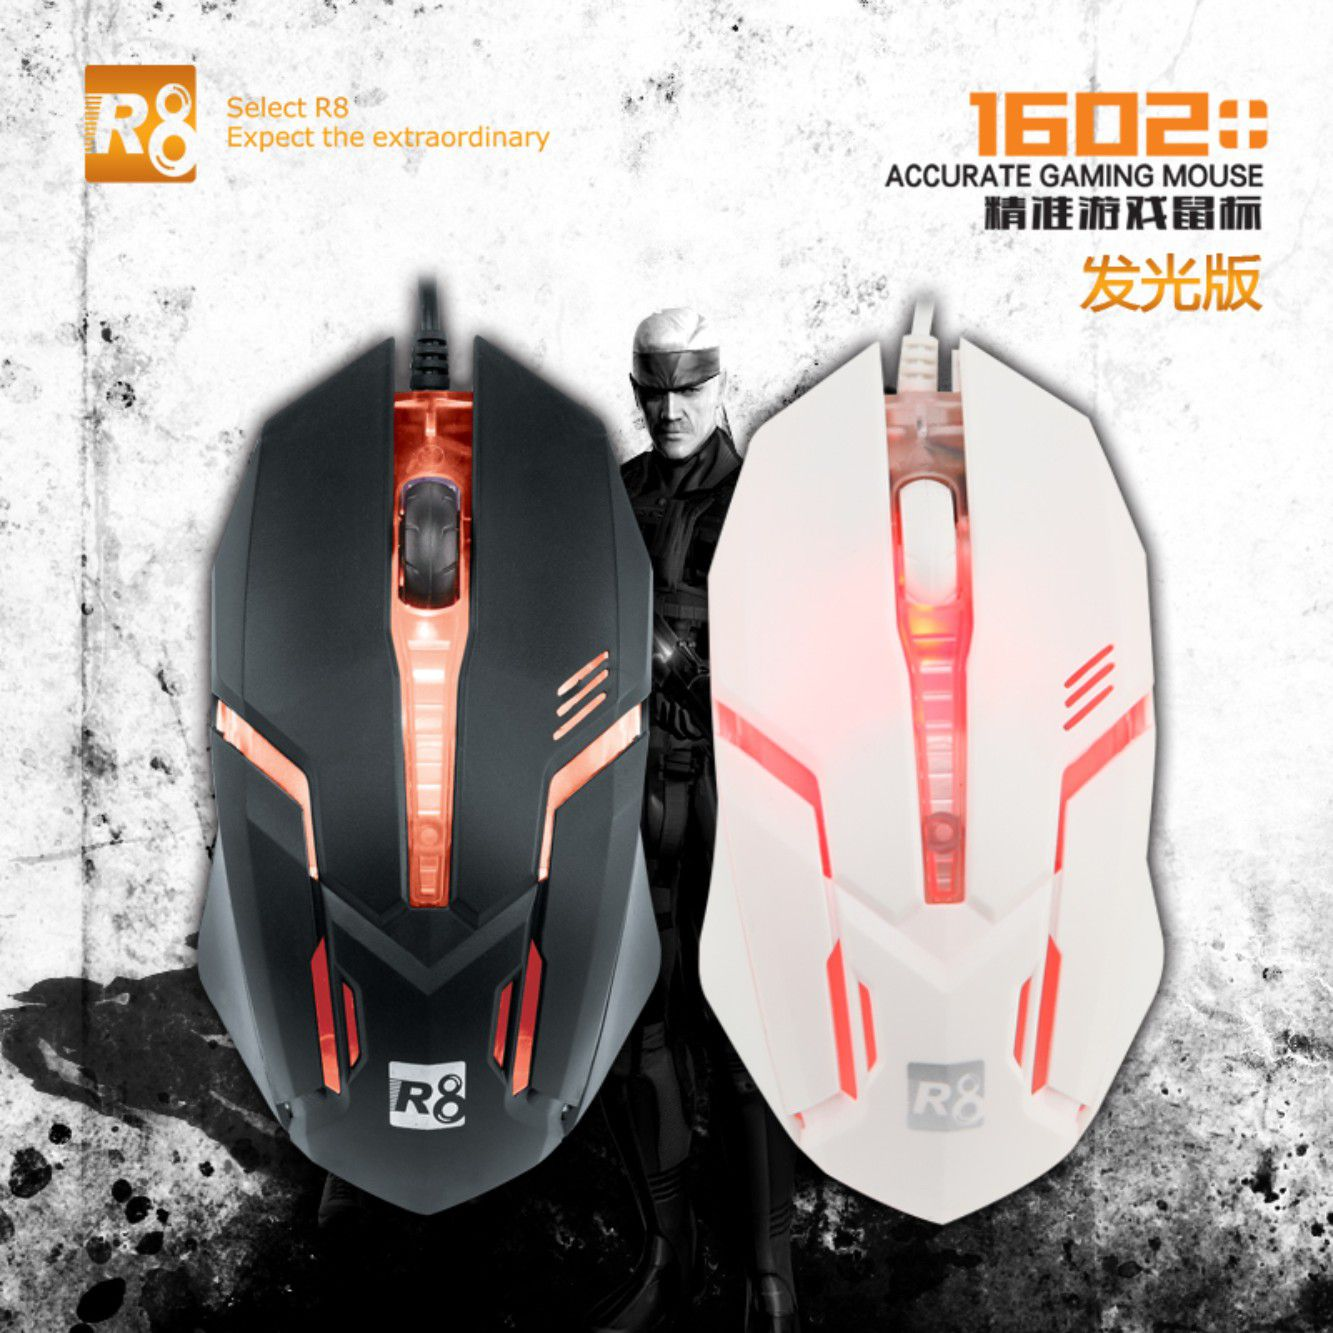 Kit 5x Mouse Gamer R8 M1602L